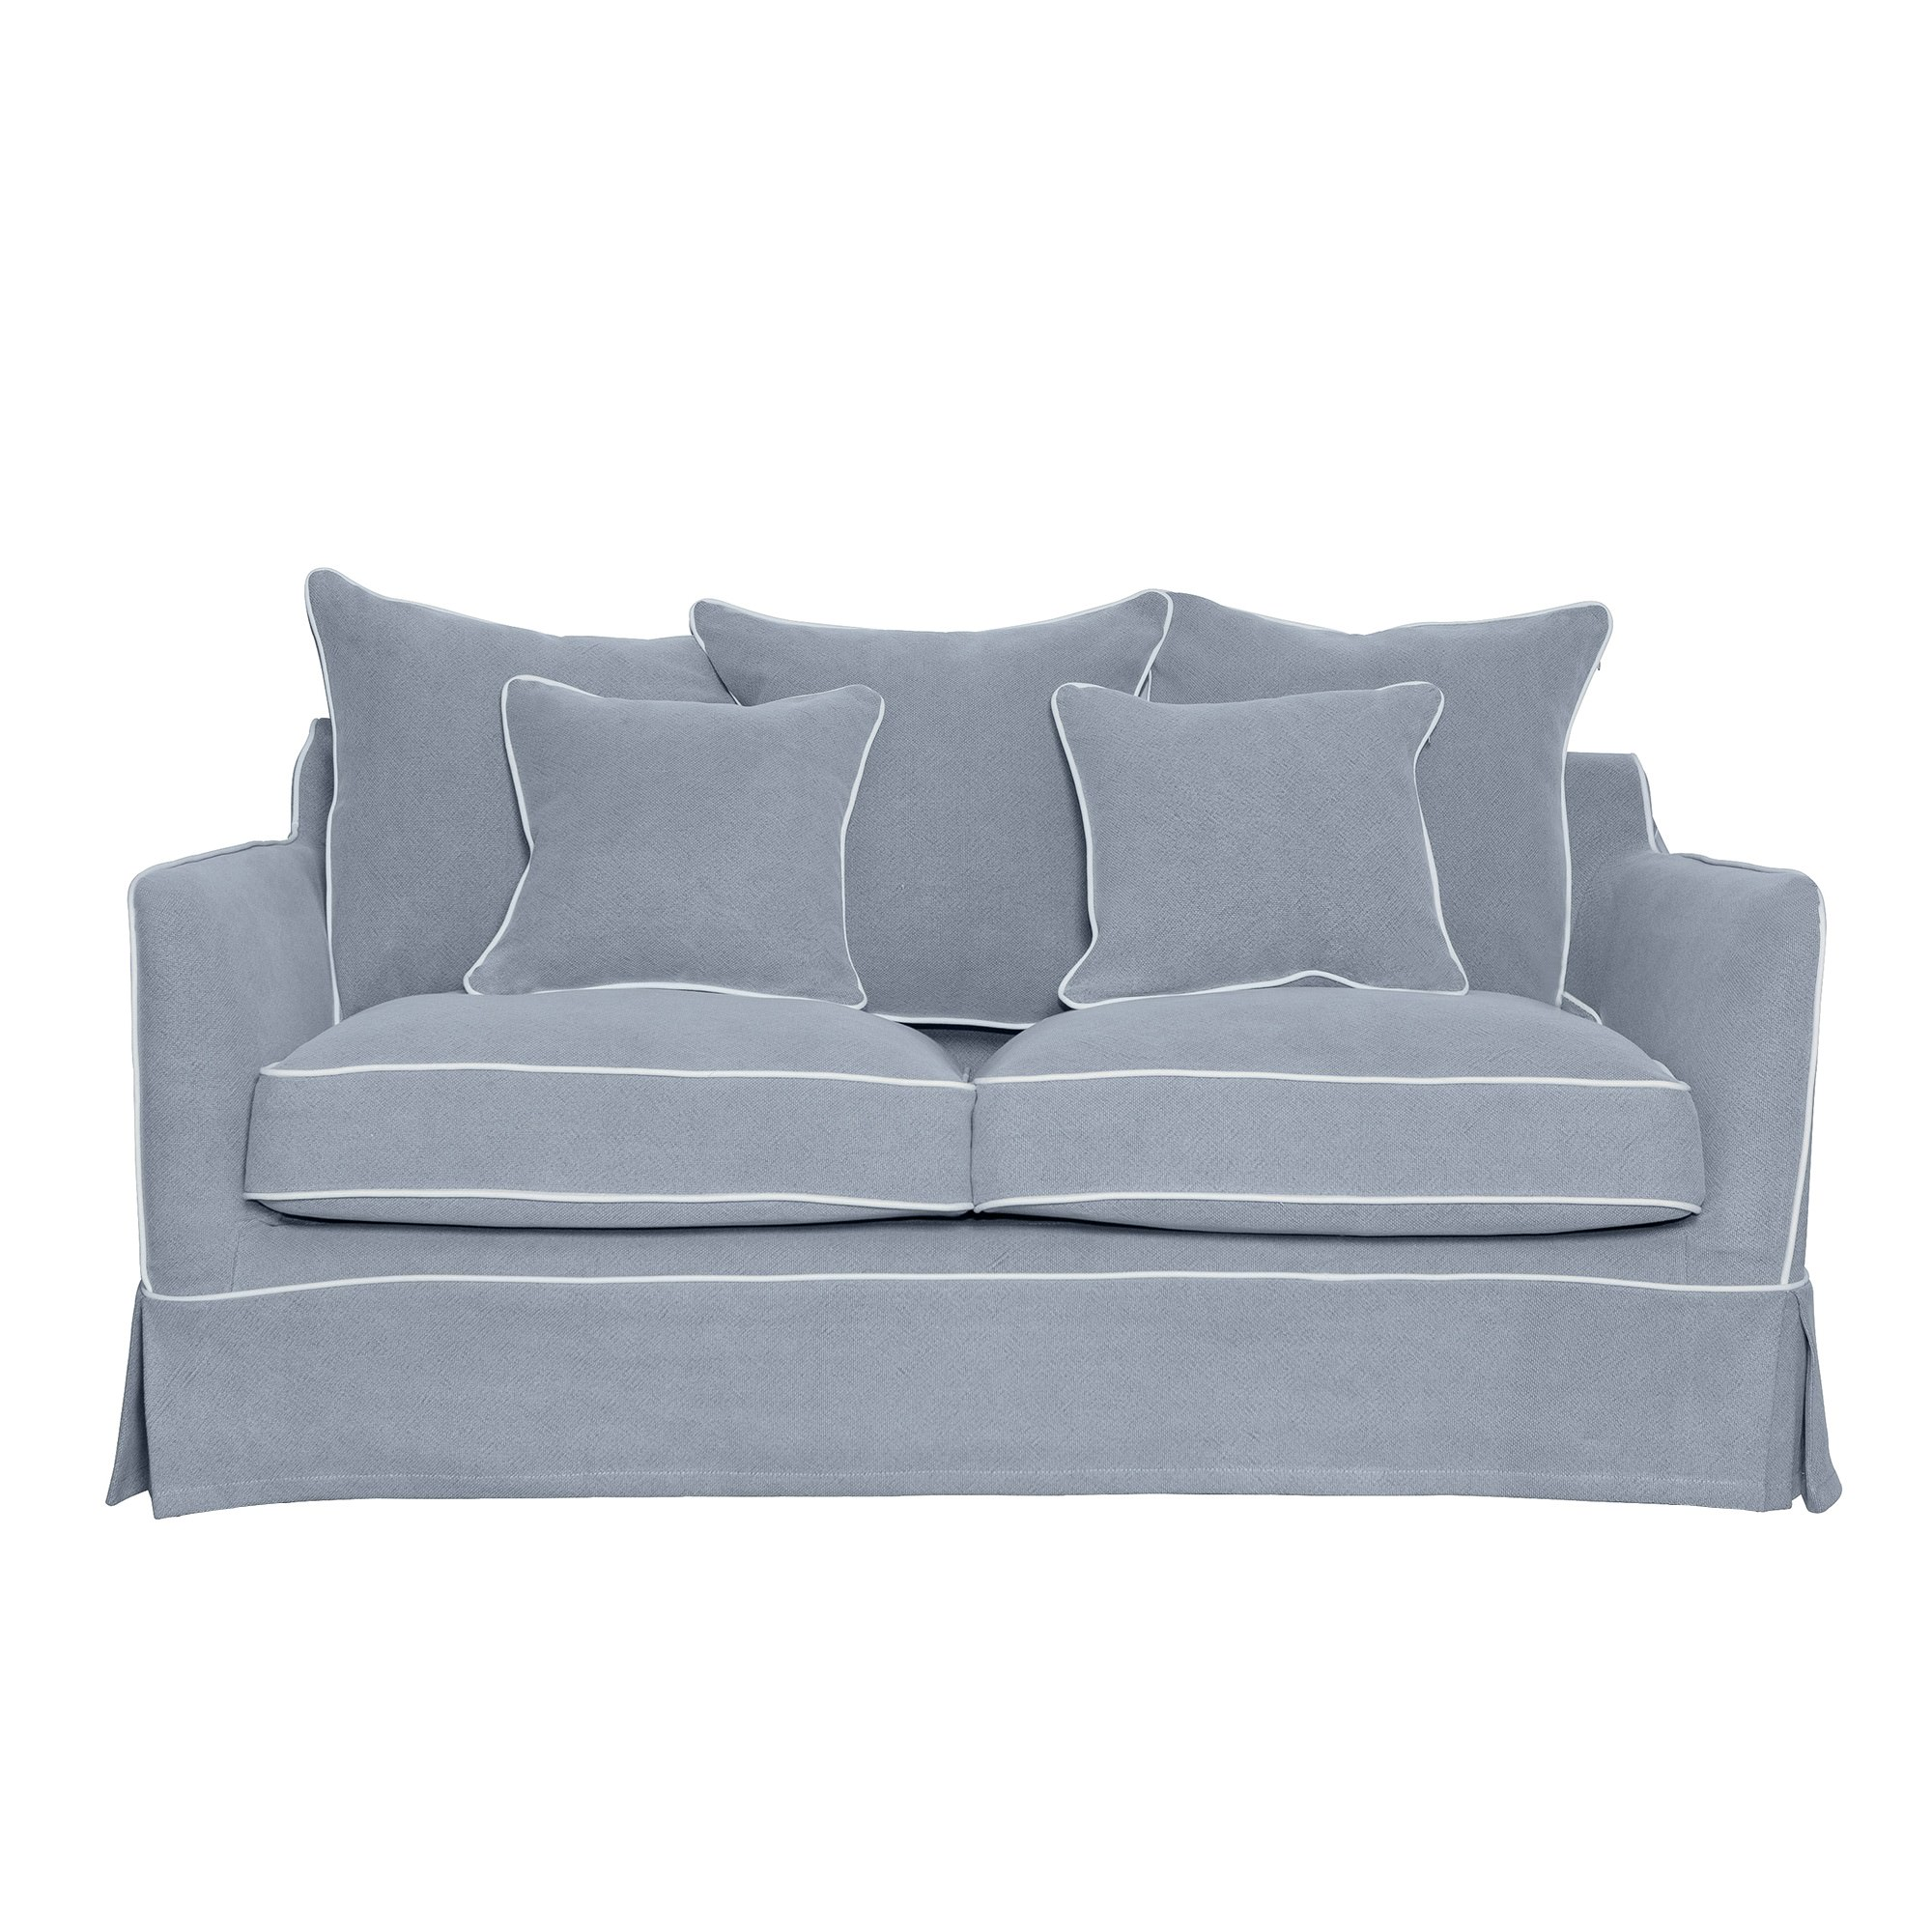 Noosa Fabric Sofa Cover (Cover Only), 2 Seater, Grey with White Piping